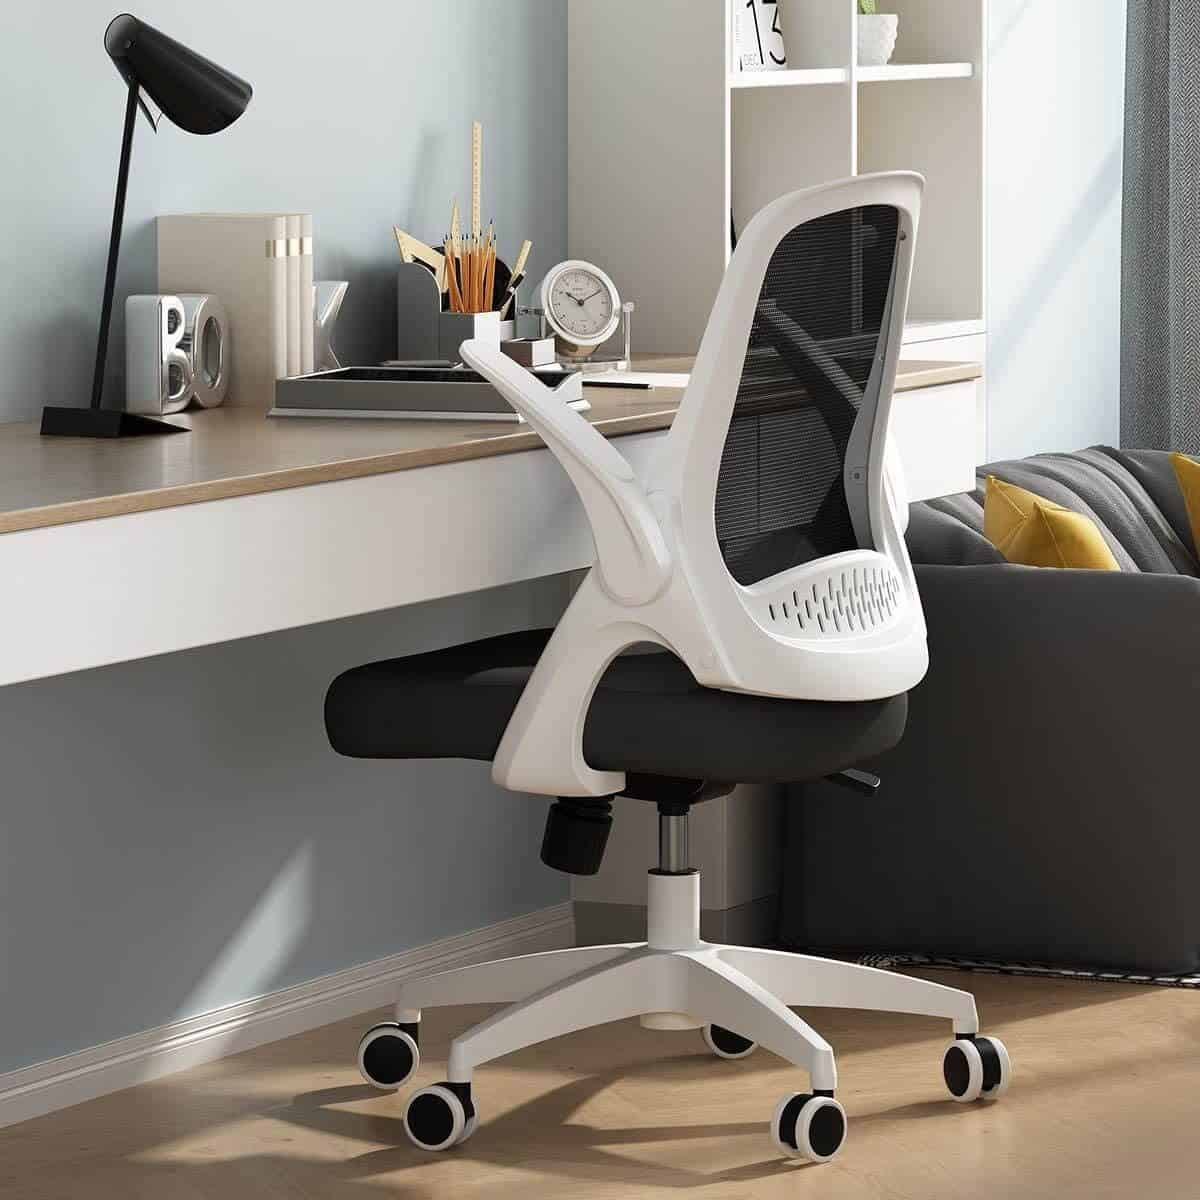 Hbada office chair.